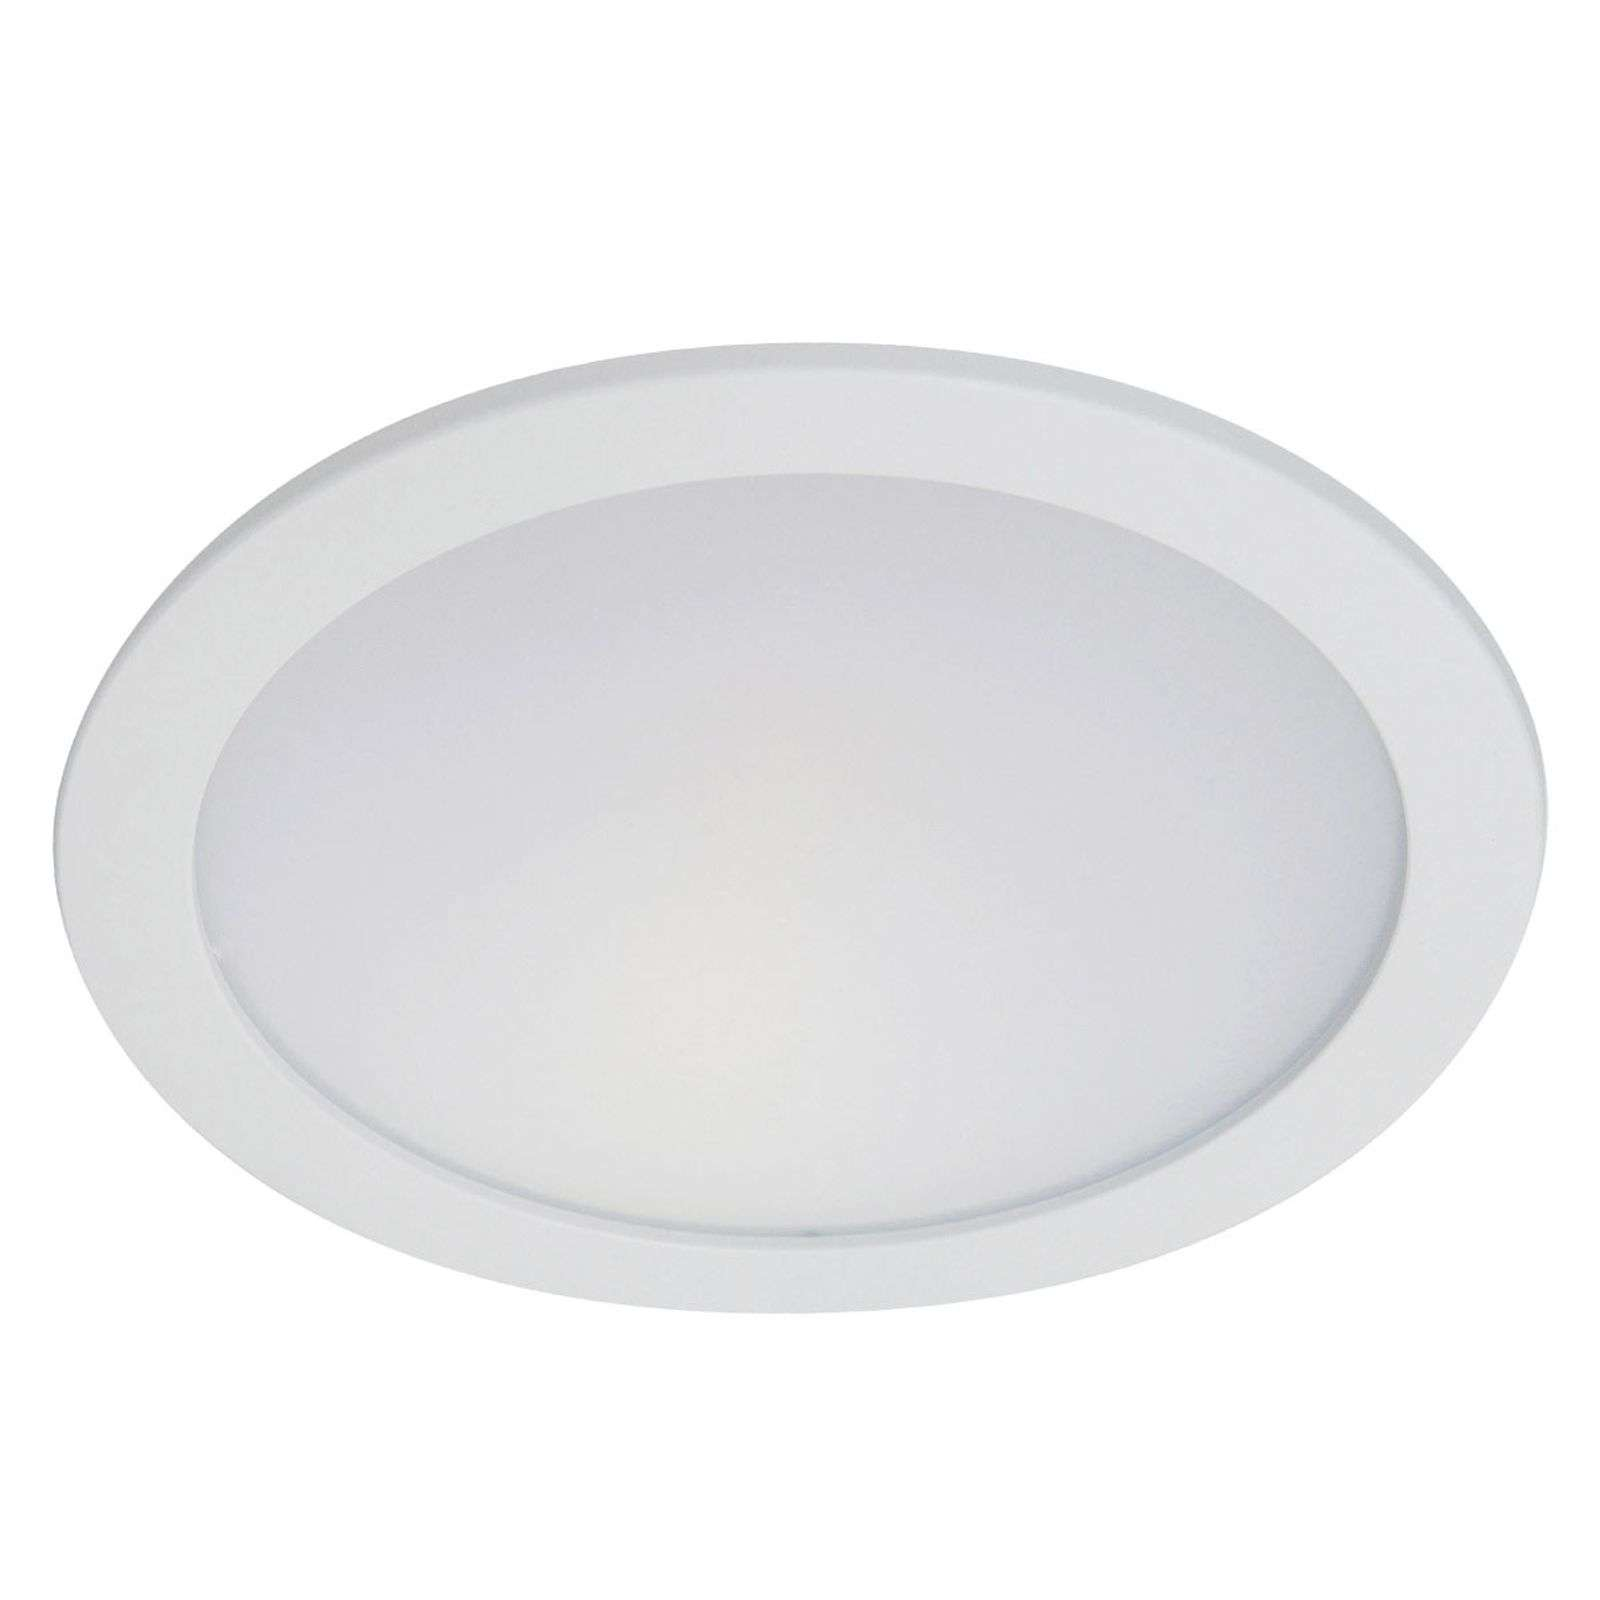 Hony - downlight encastrable LED blanc 14W, 3 000K